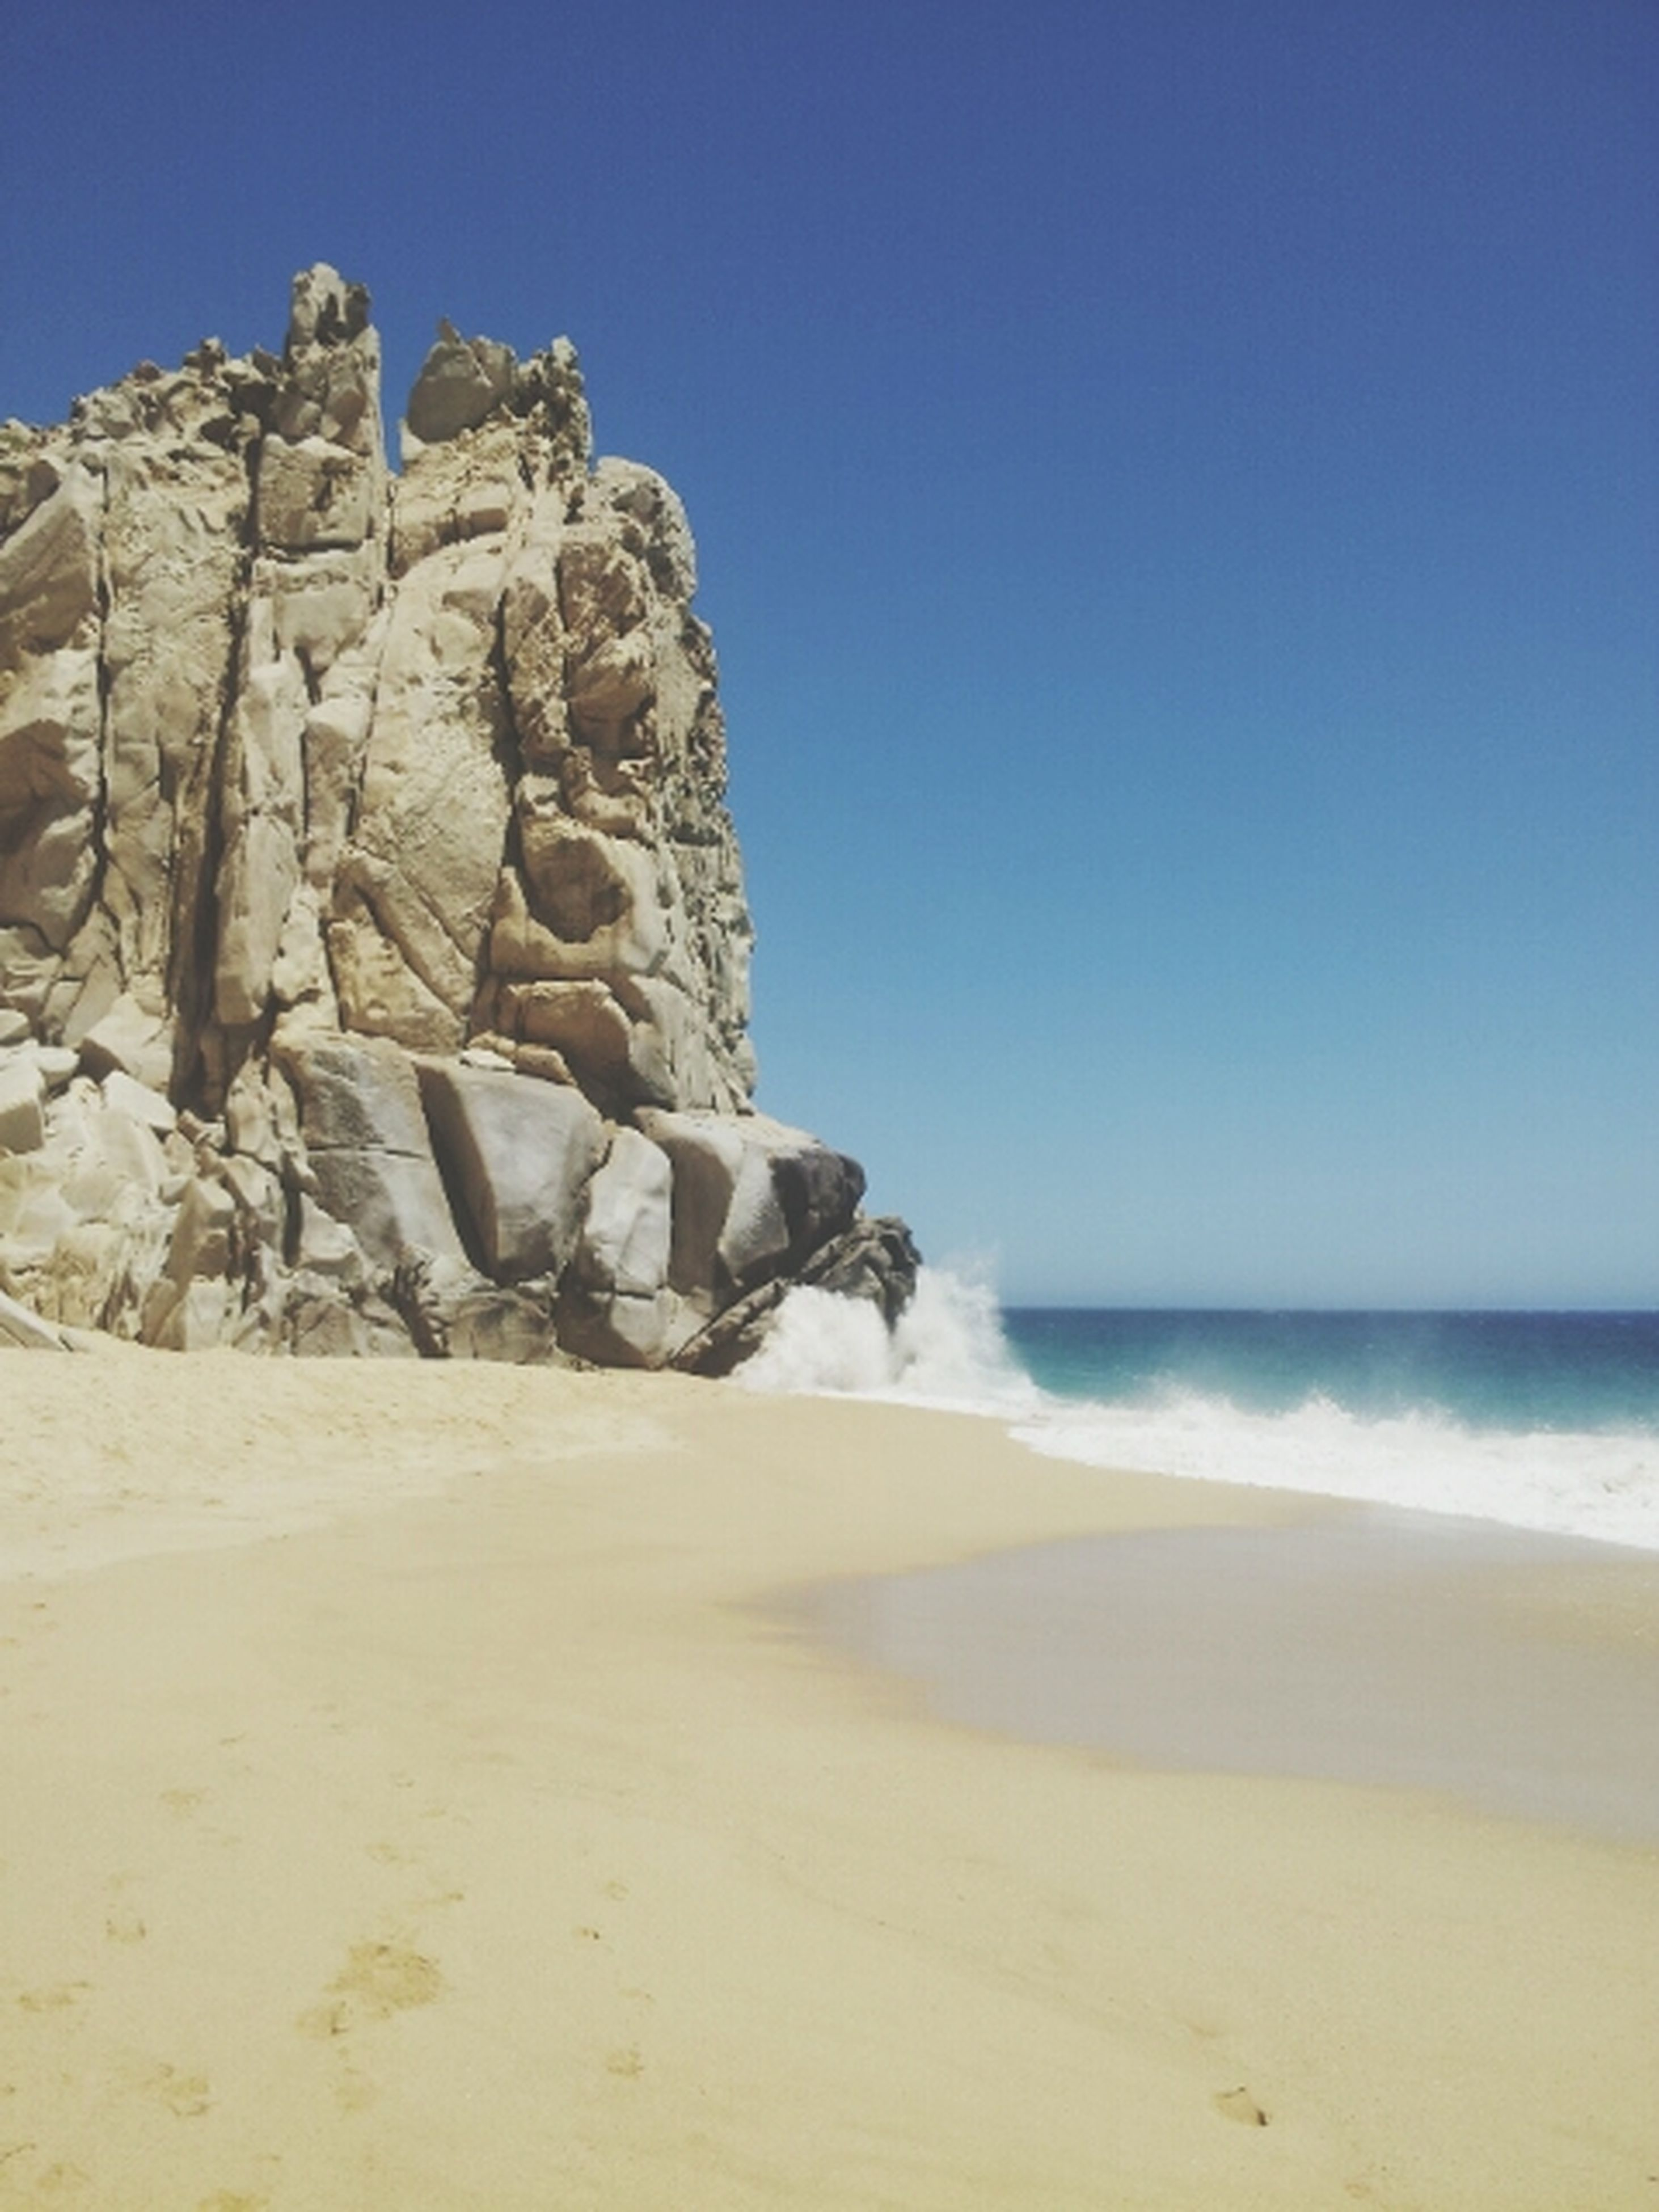 sea, beach, sand, clear sky, horizon over water, shore, water, tranquility, tranquil scene, blue, copy space, scenics, nature, beauty in nature, rock formation, sunlight, rock - object, coastline, day, sky